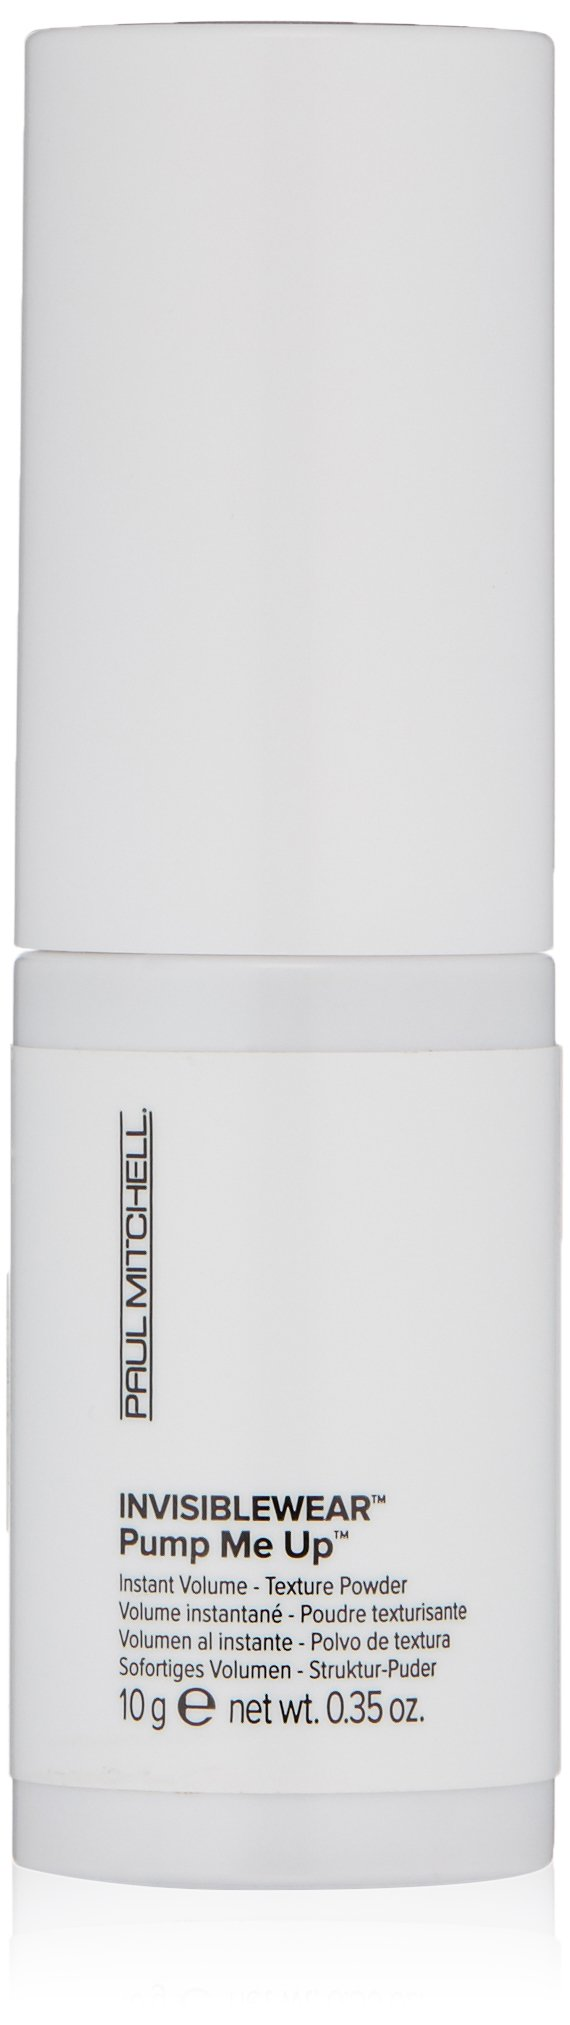 Amazon.com: Paul Mitchell Invisiblewear Brunette Dry